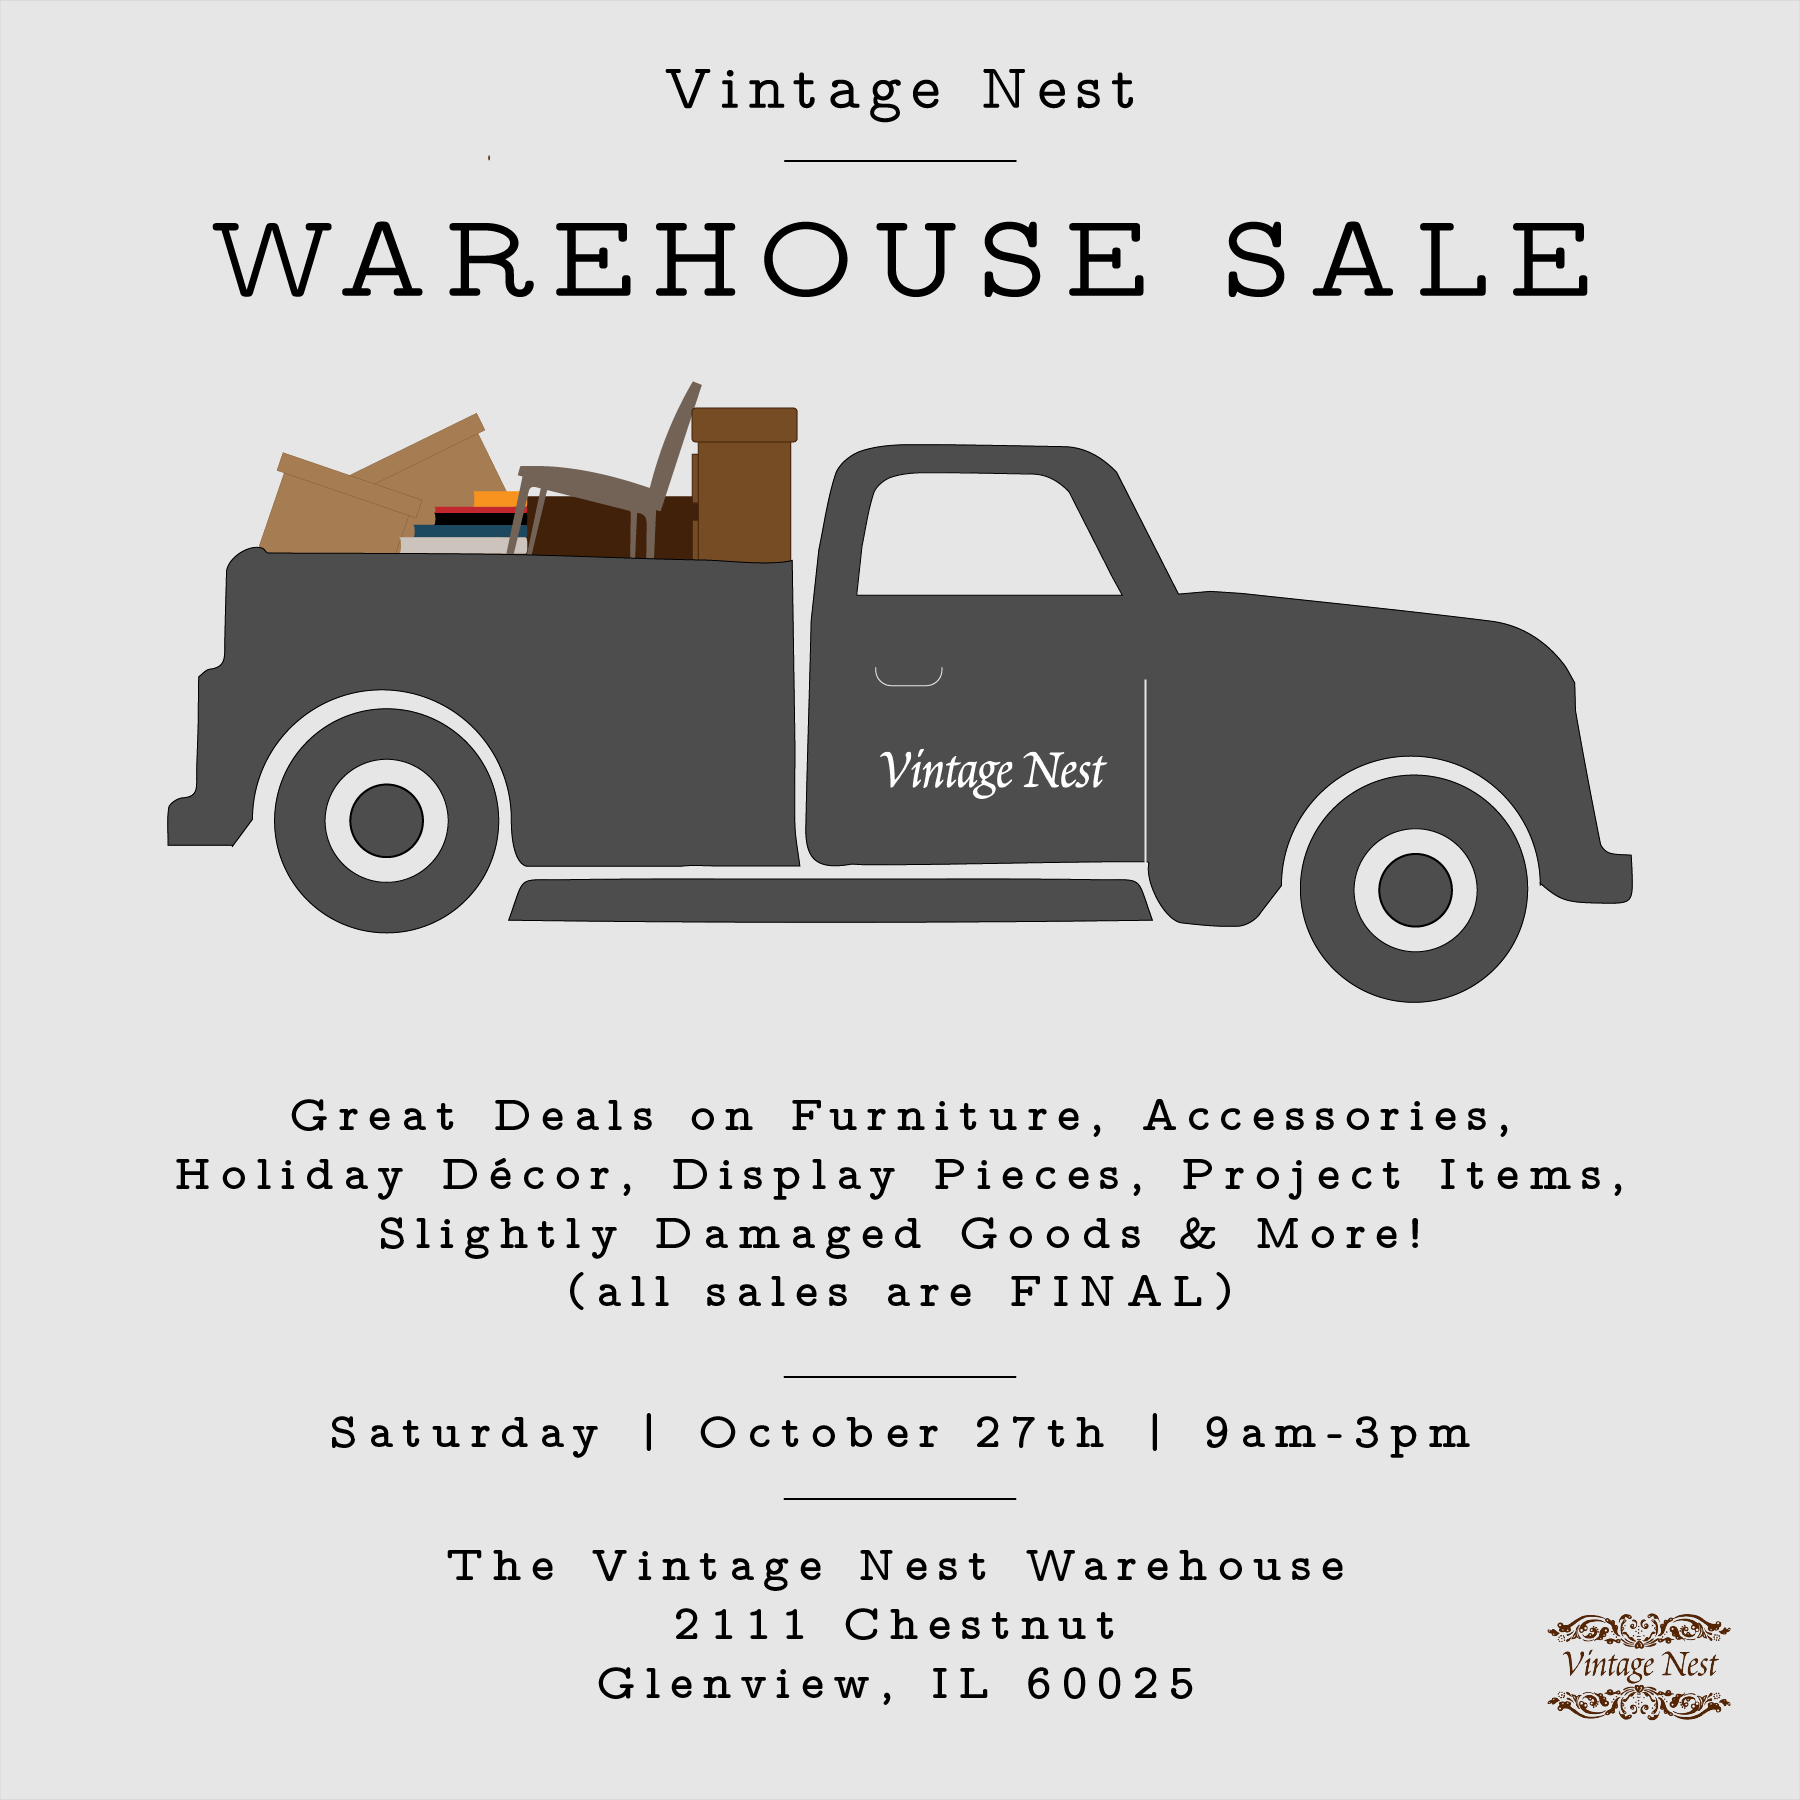 VN-WarehouseSale-IG-01.png